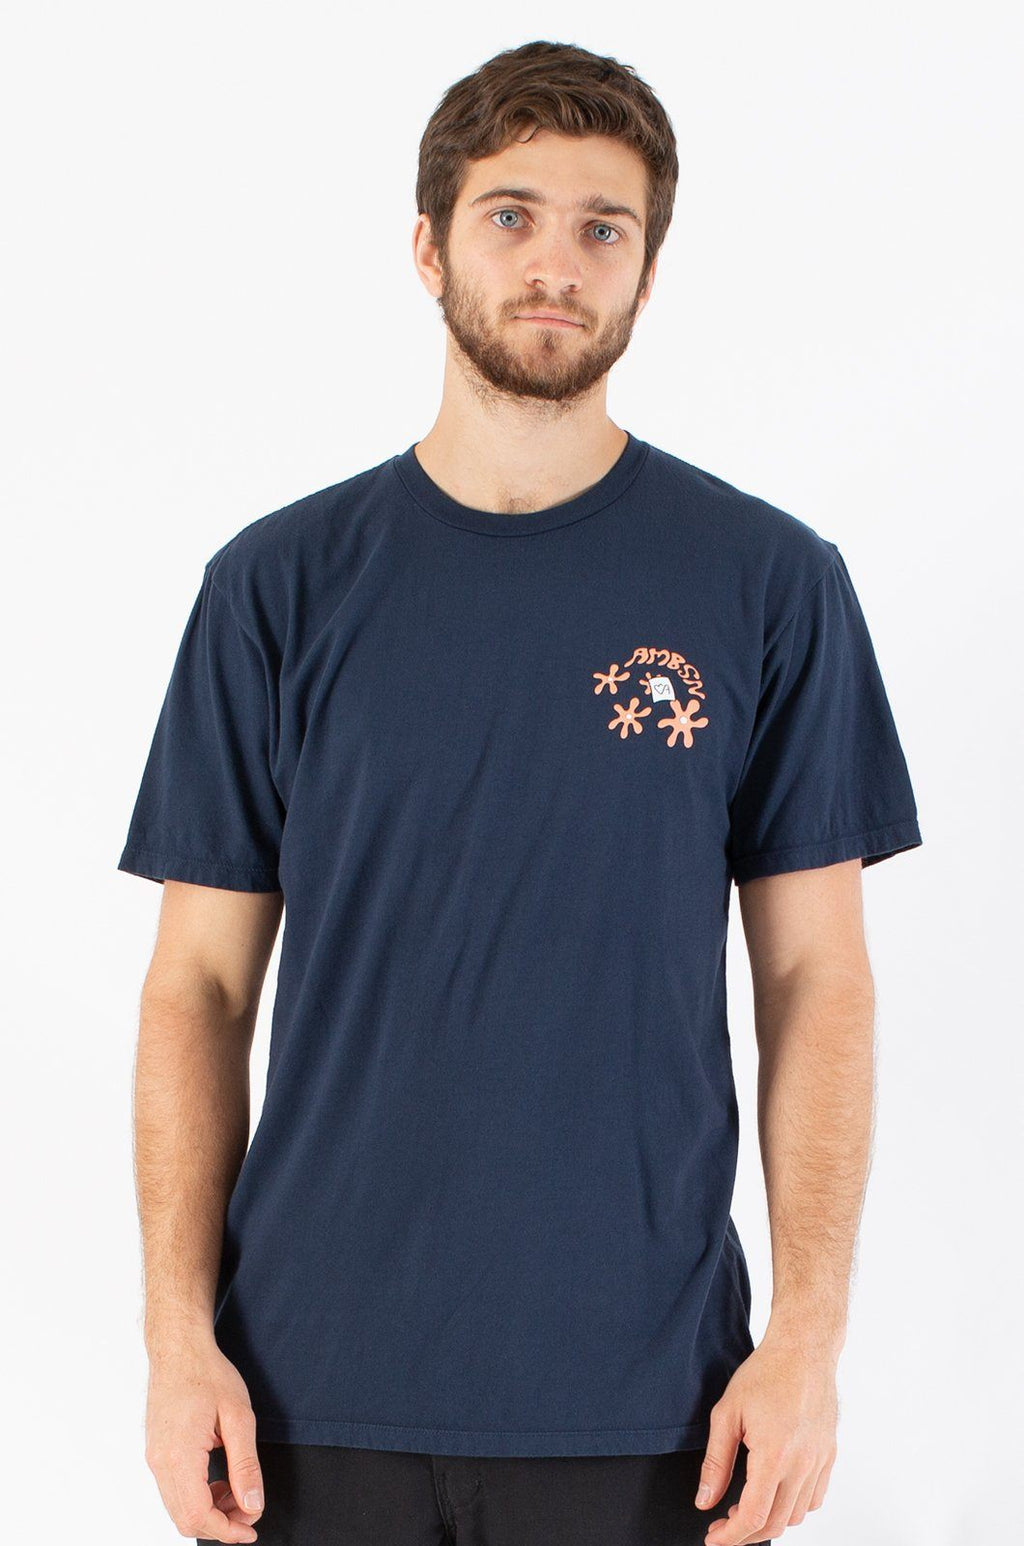 Stew T-Shirts ambsn NAVY XS